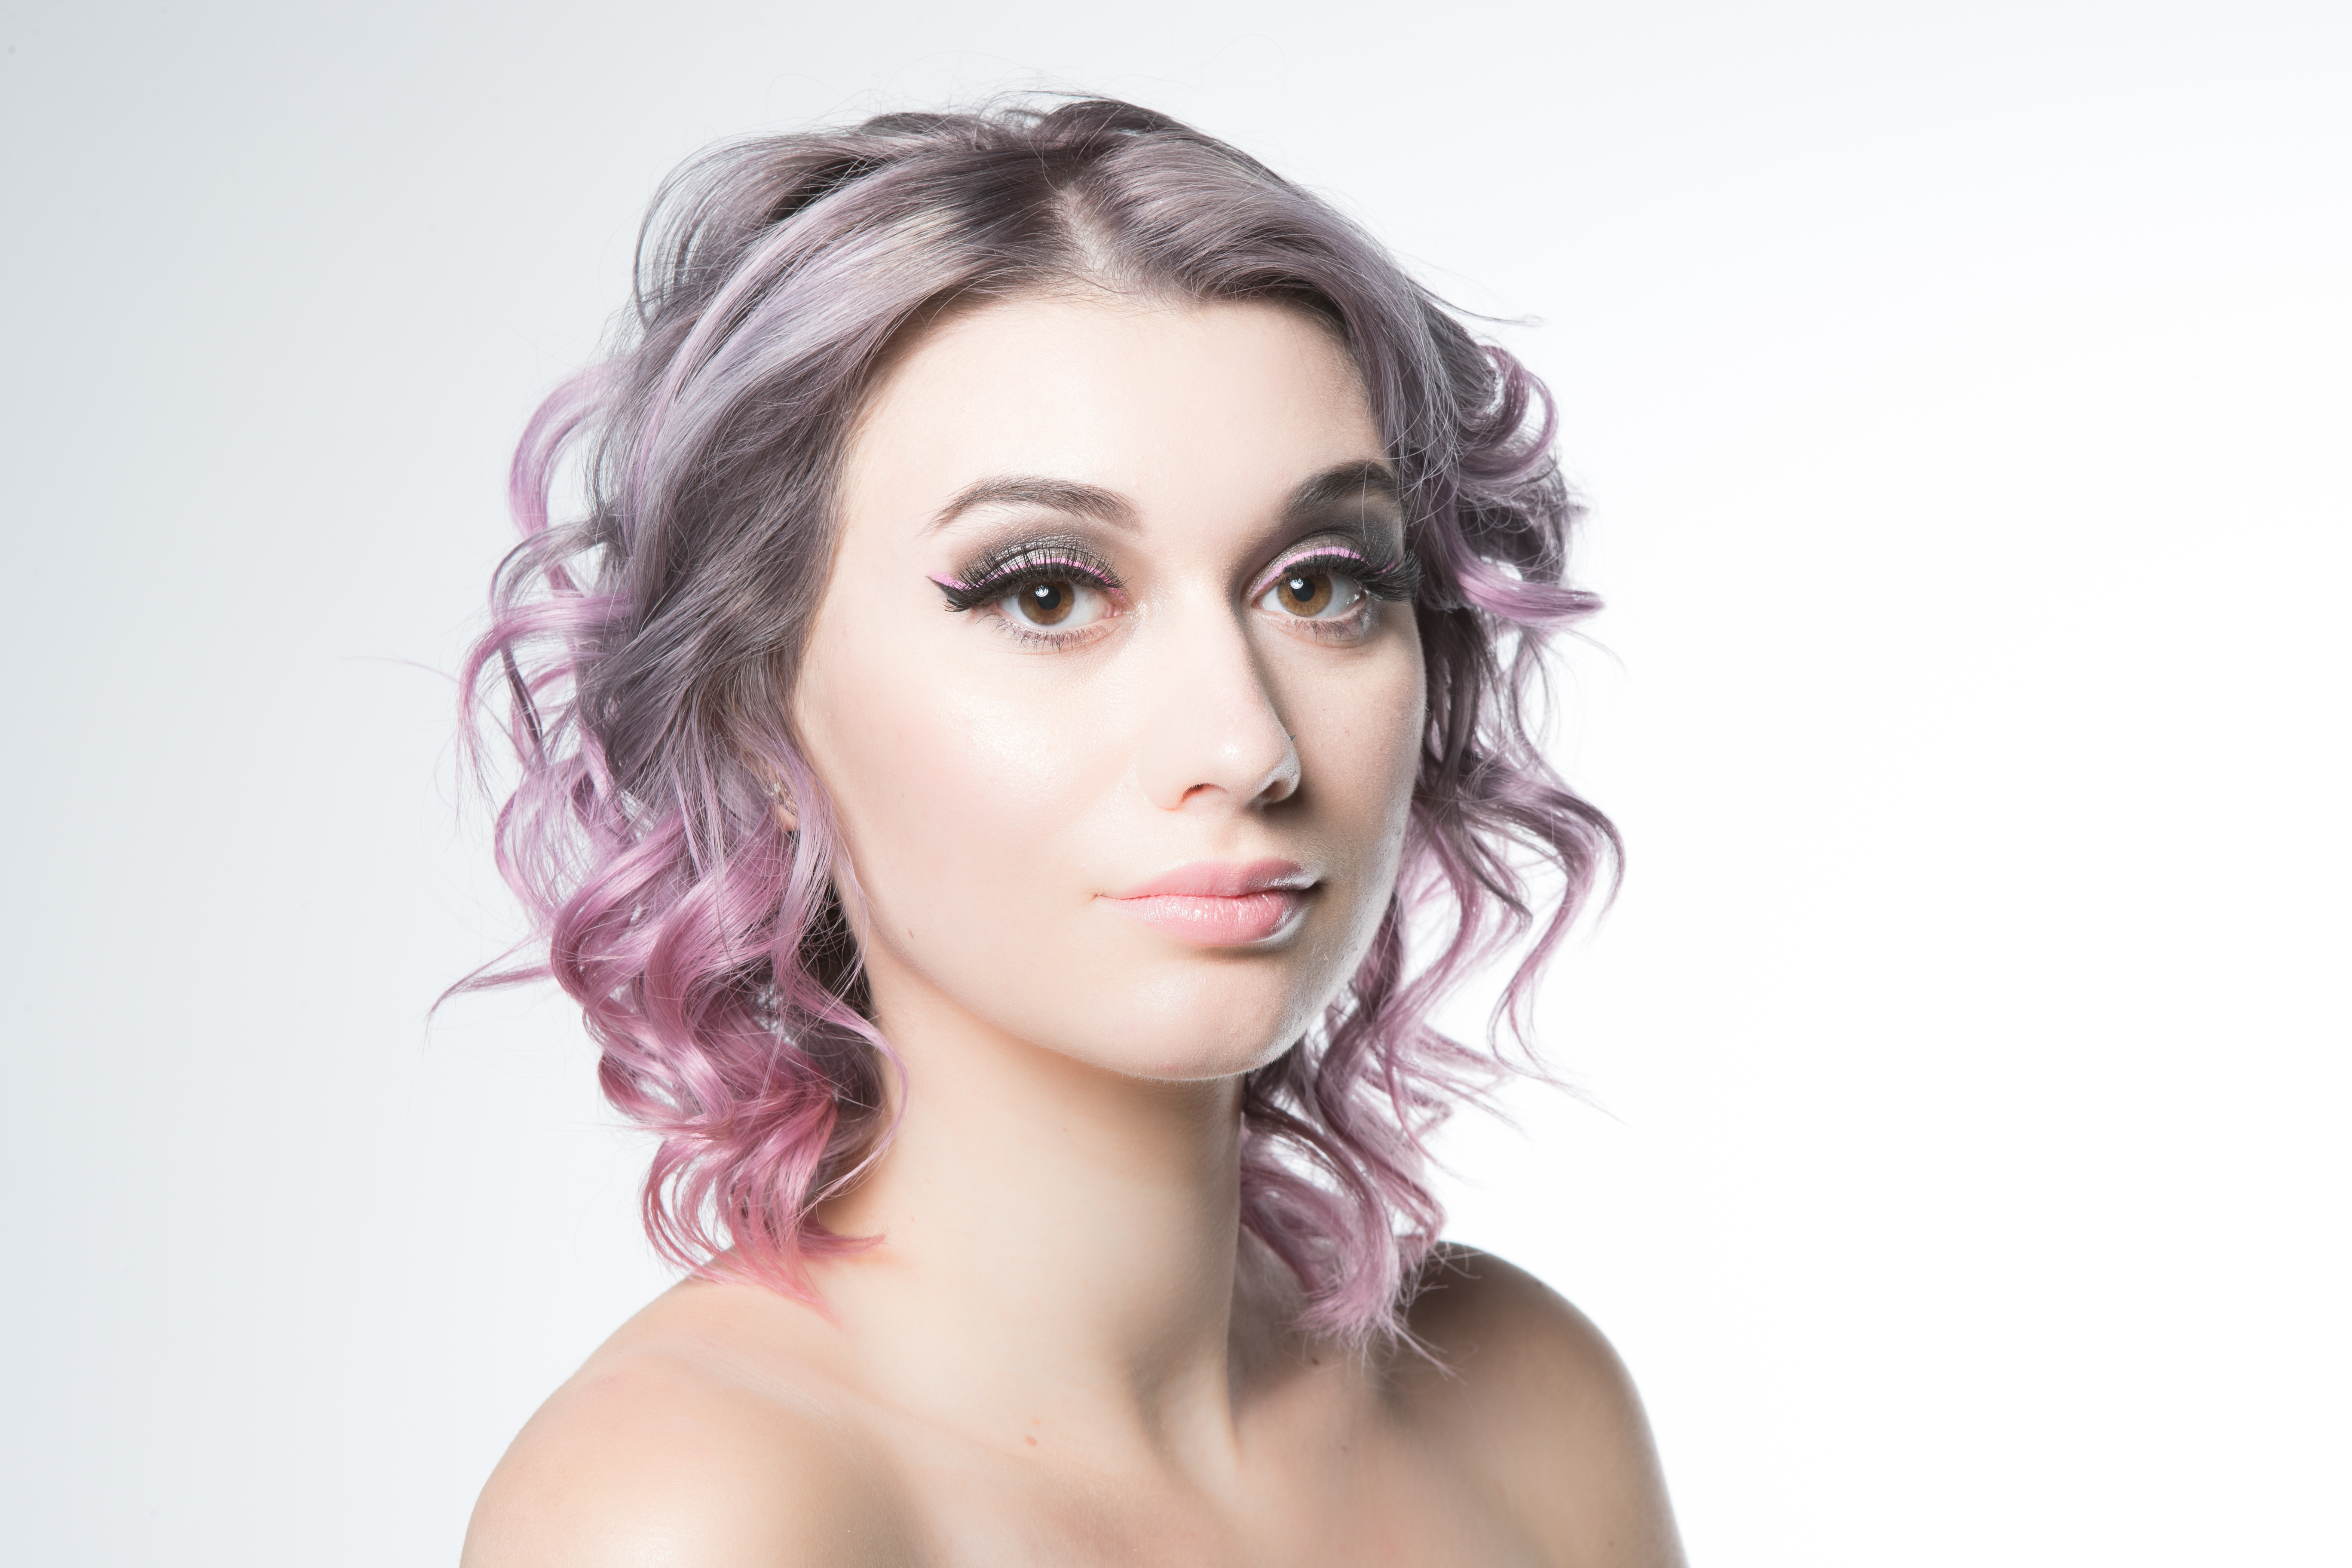 Model with shoulder-length wavy silver-lilac hair fading into pink at the ends.